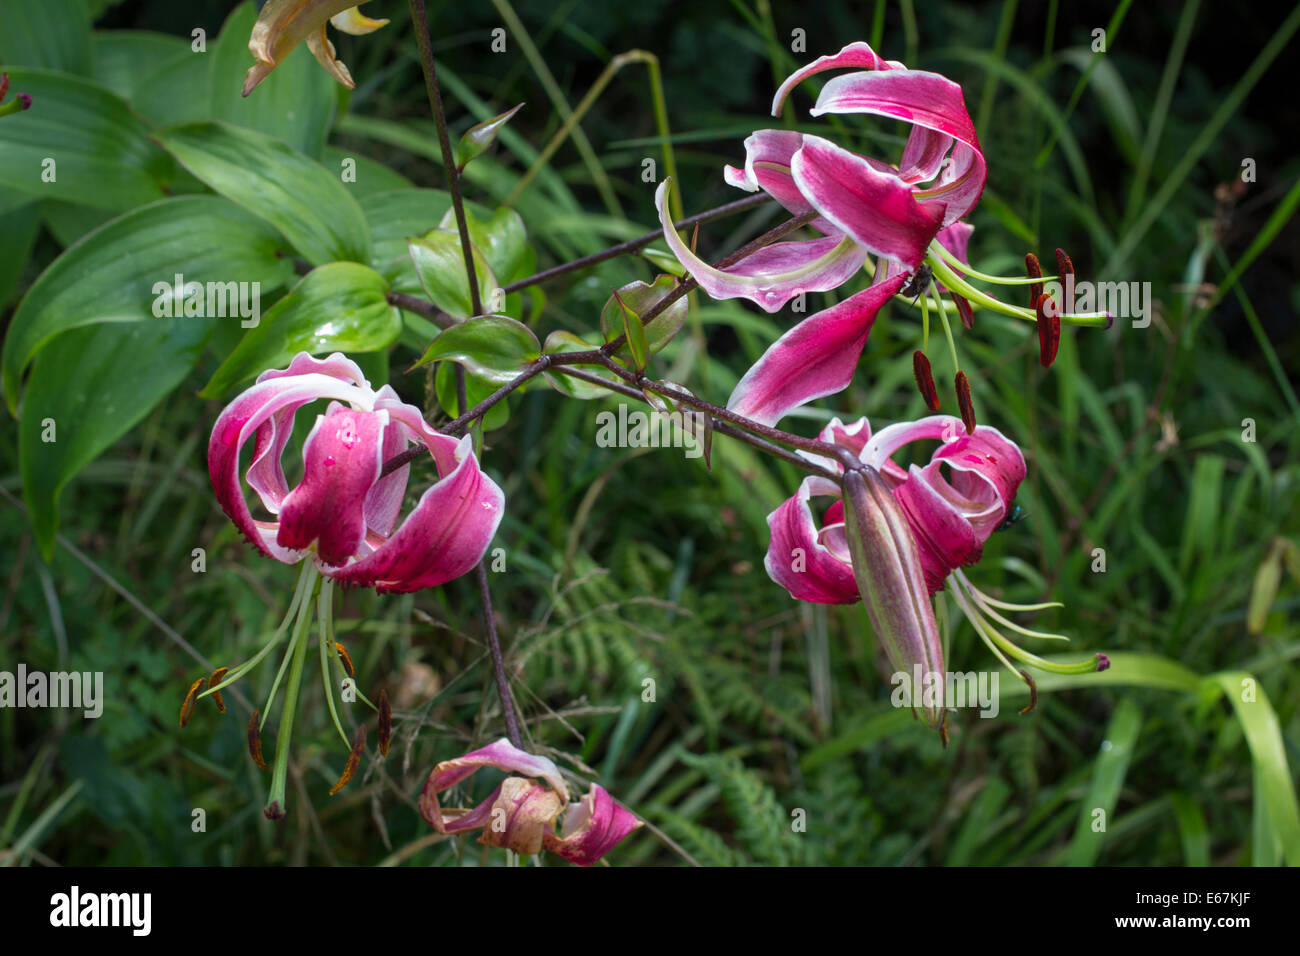 Black lily stock photos black lily stock images alamy flowers of the orienpet lily lilium black beauty stock image izmirmasajfo